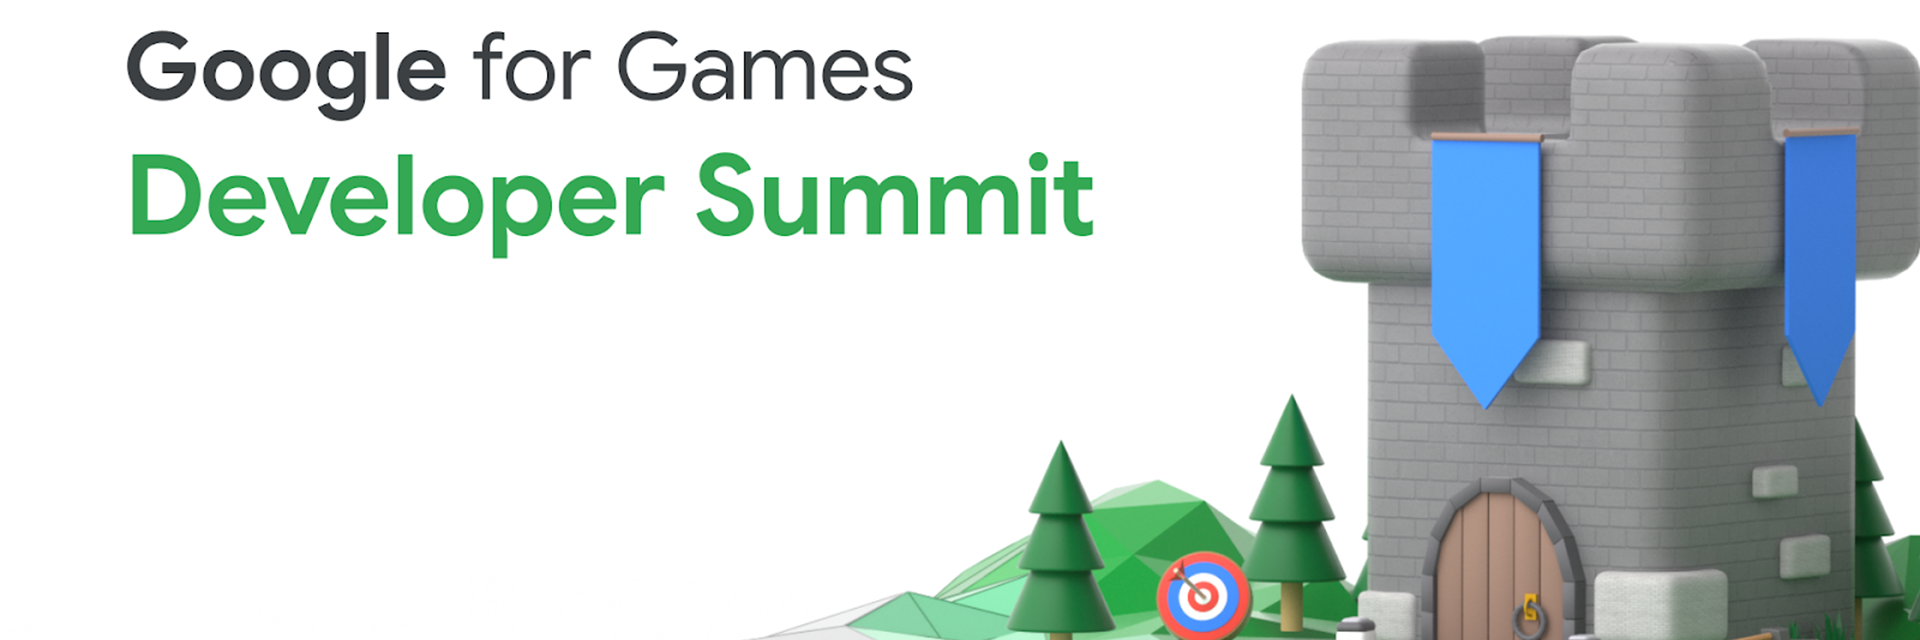 Google for Games Developer Summit: 10 Things to Know Image